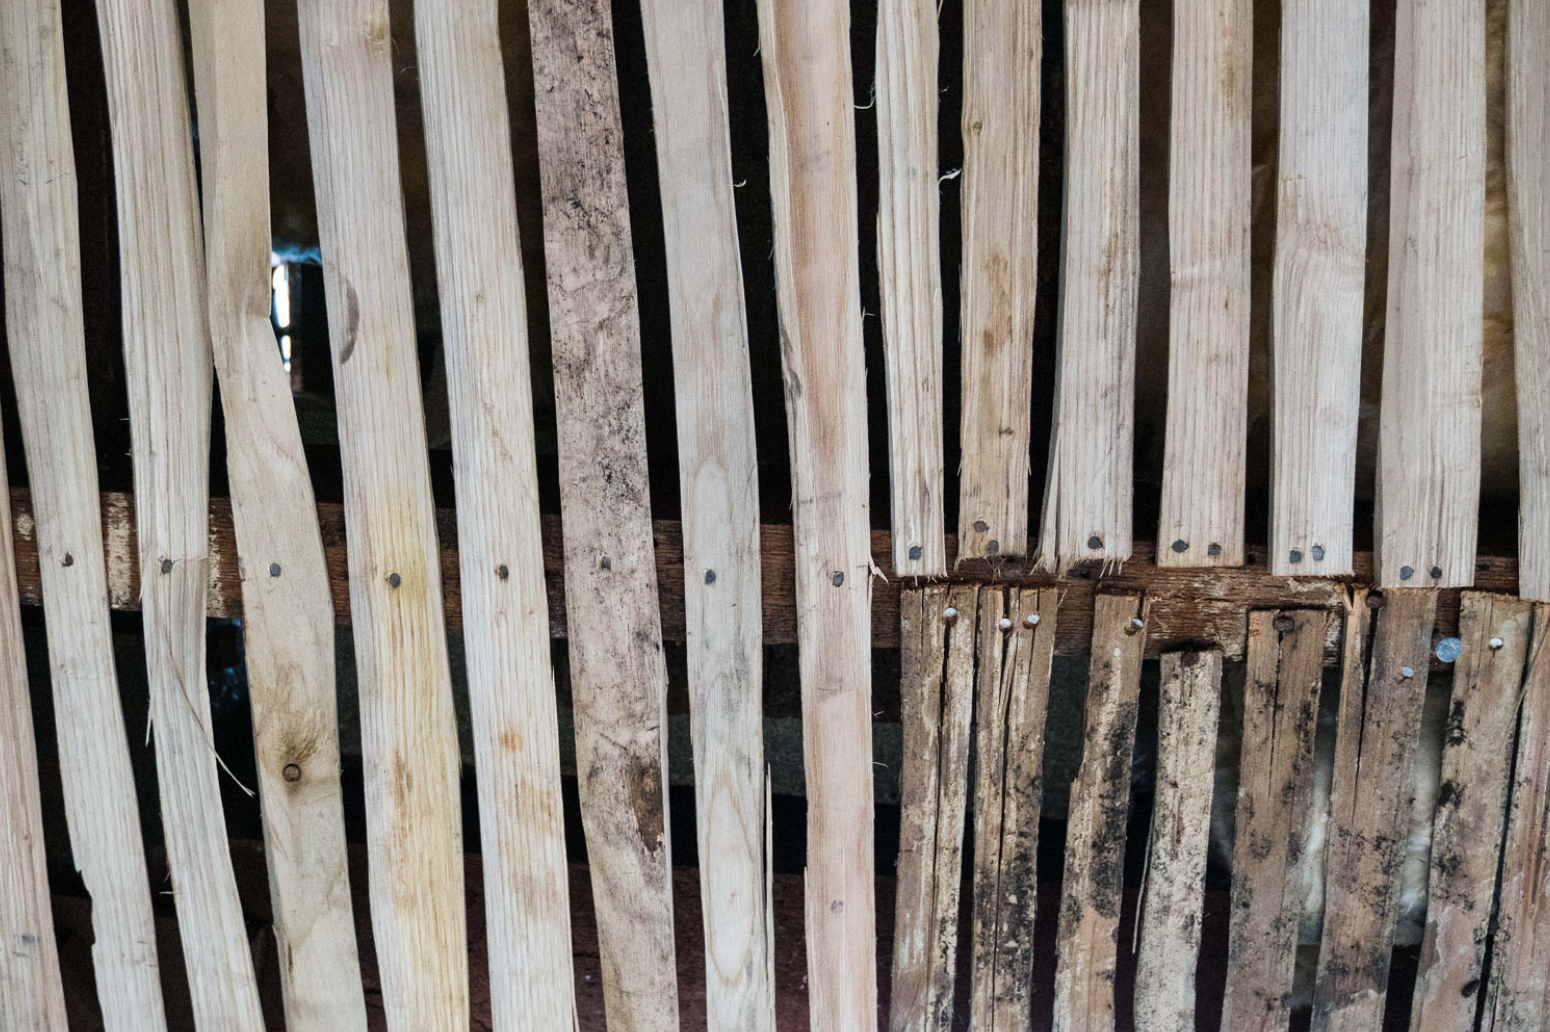 New laths (left) are gradually replacing the elderly laths (bottom right) that are layered beneath the ceiling of the Meeting House